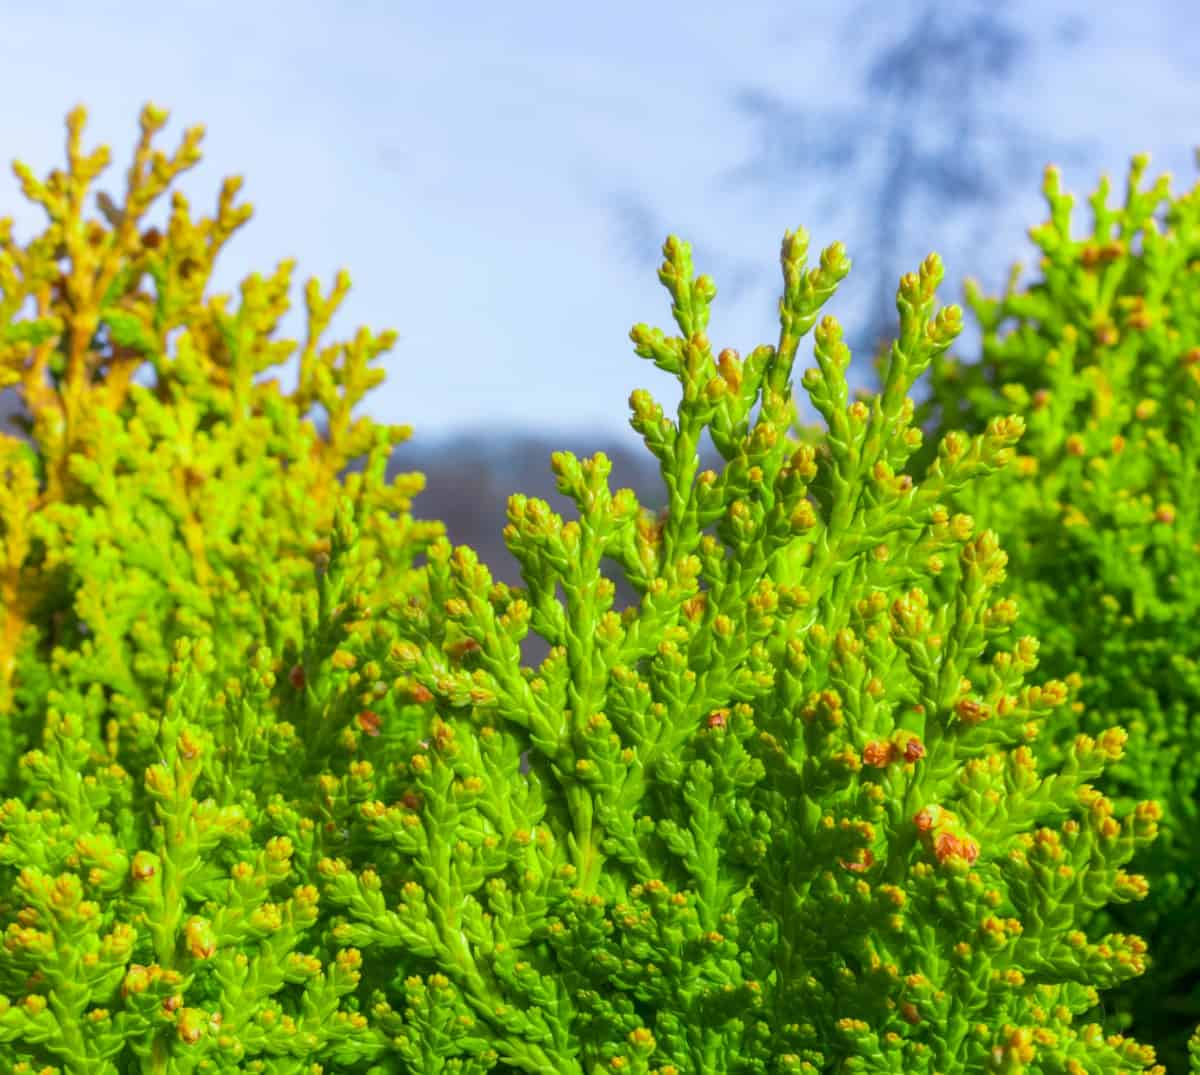 green giant arborvitae is a great privacy shrub